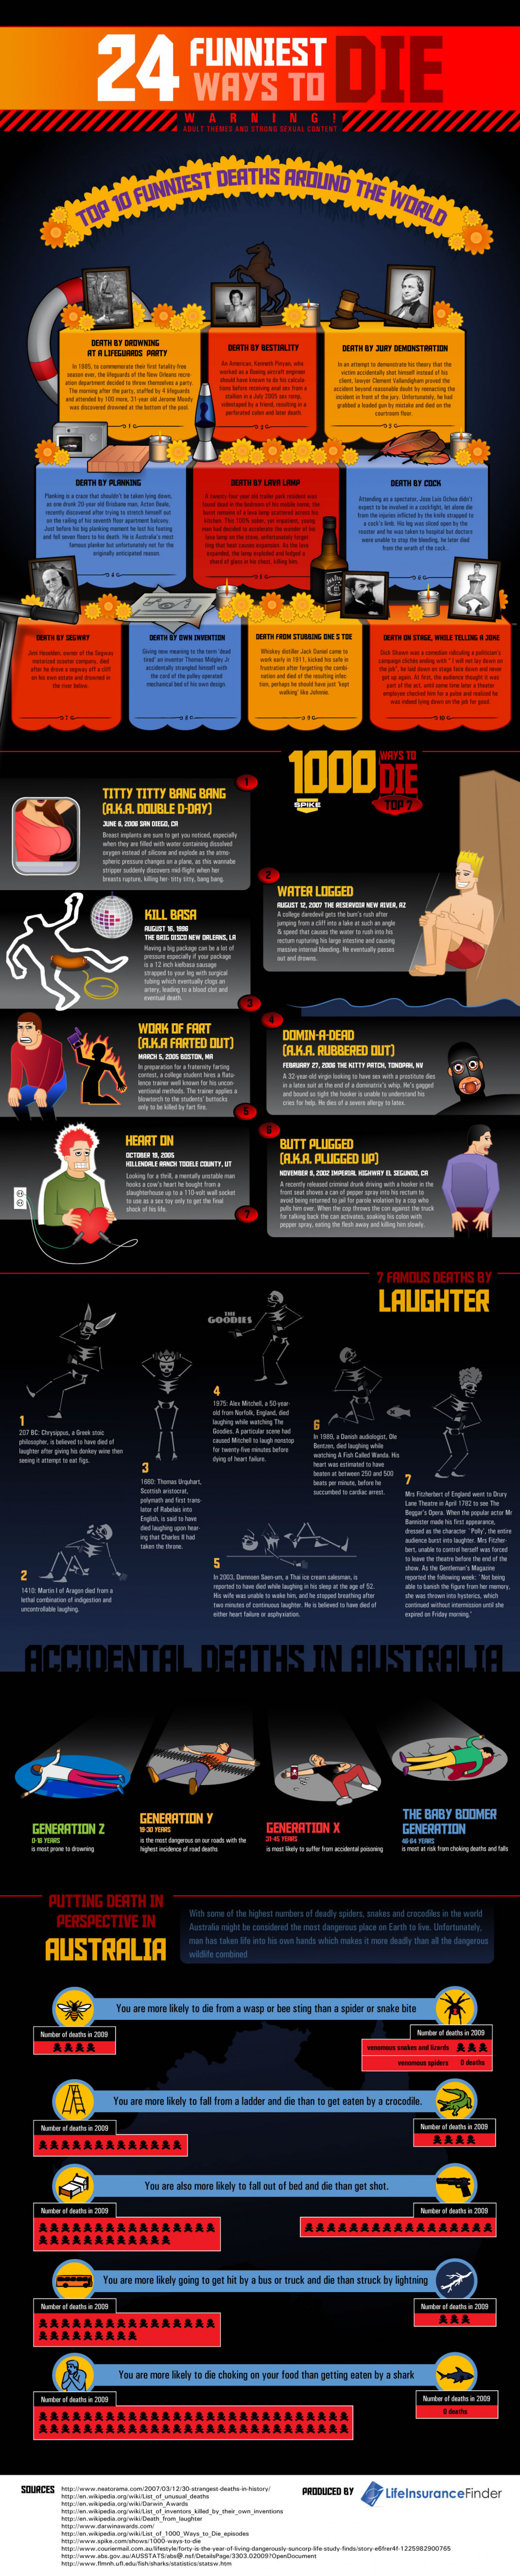 24 Funniest Ways to Die Infographic